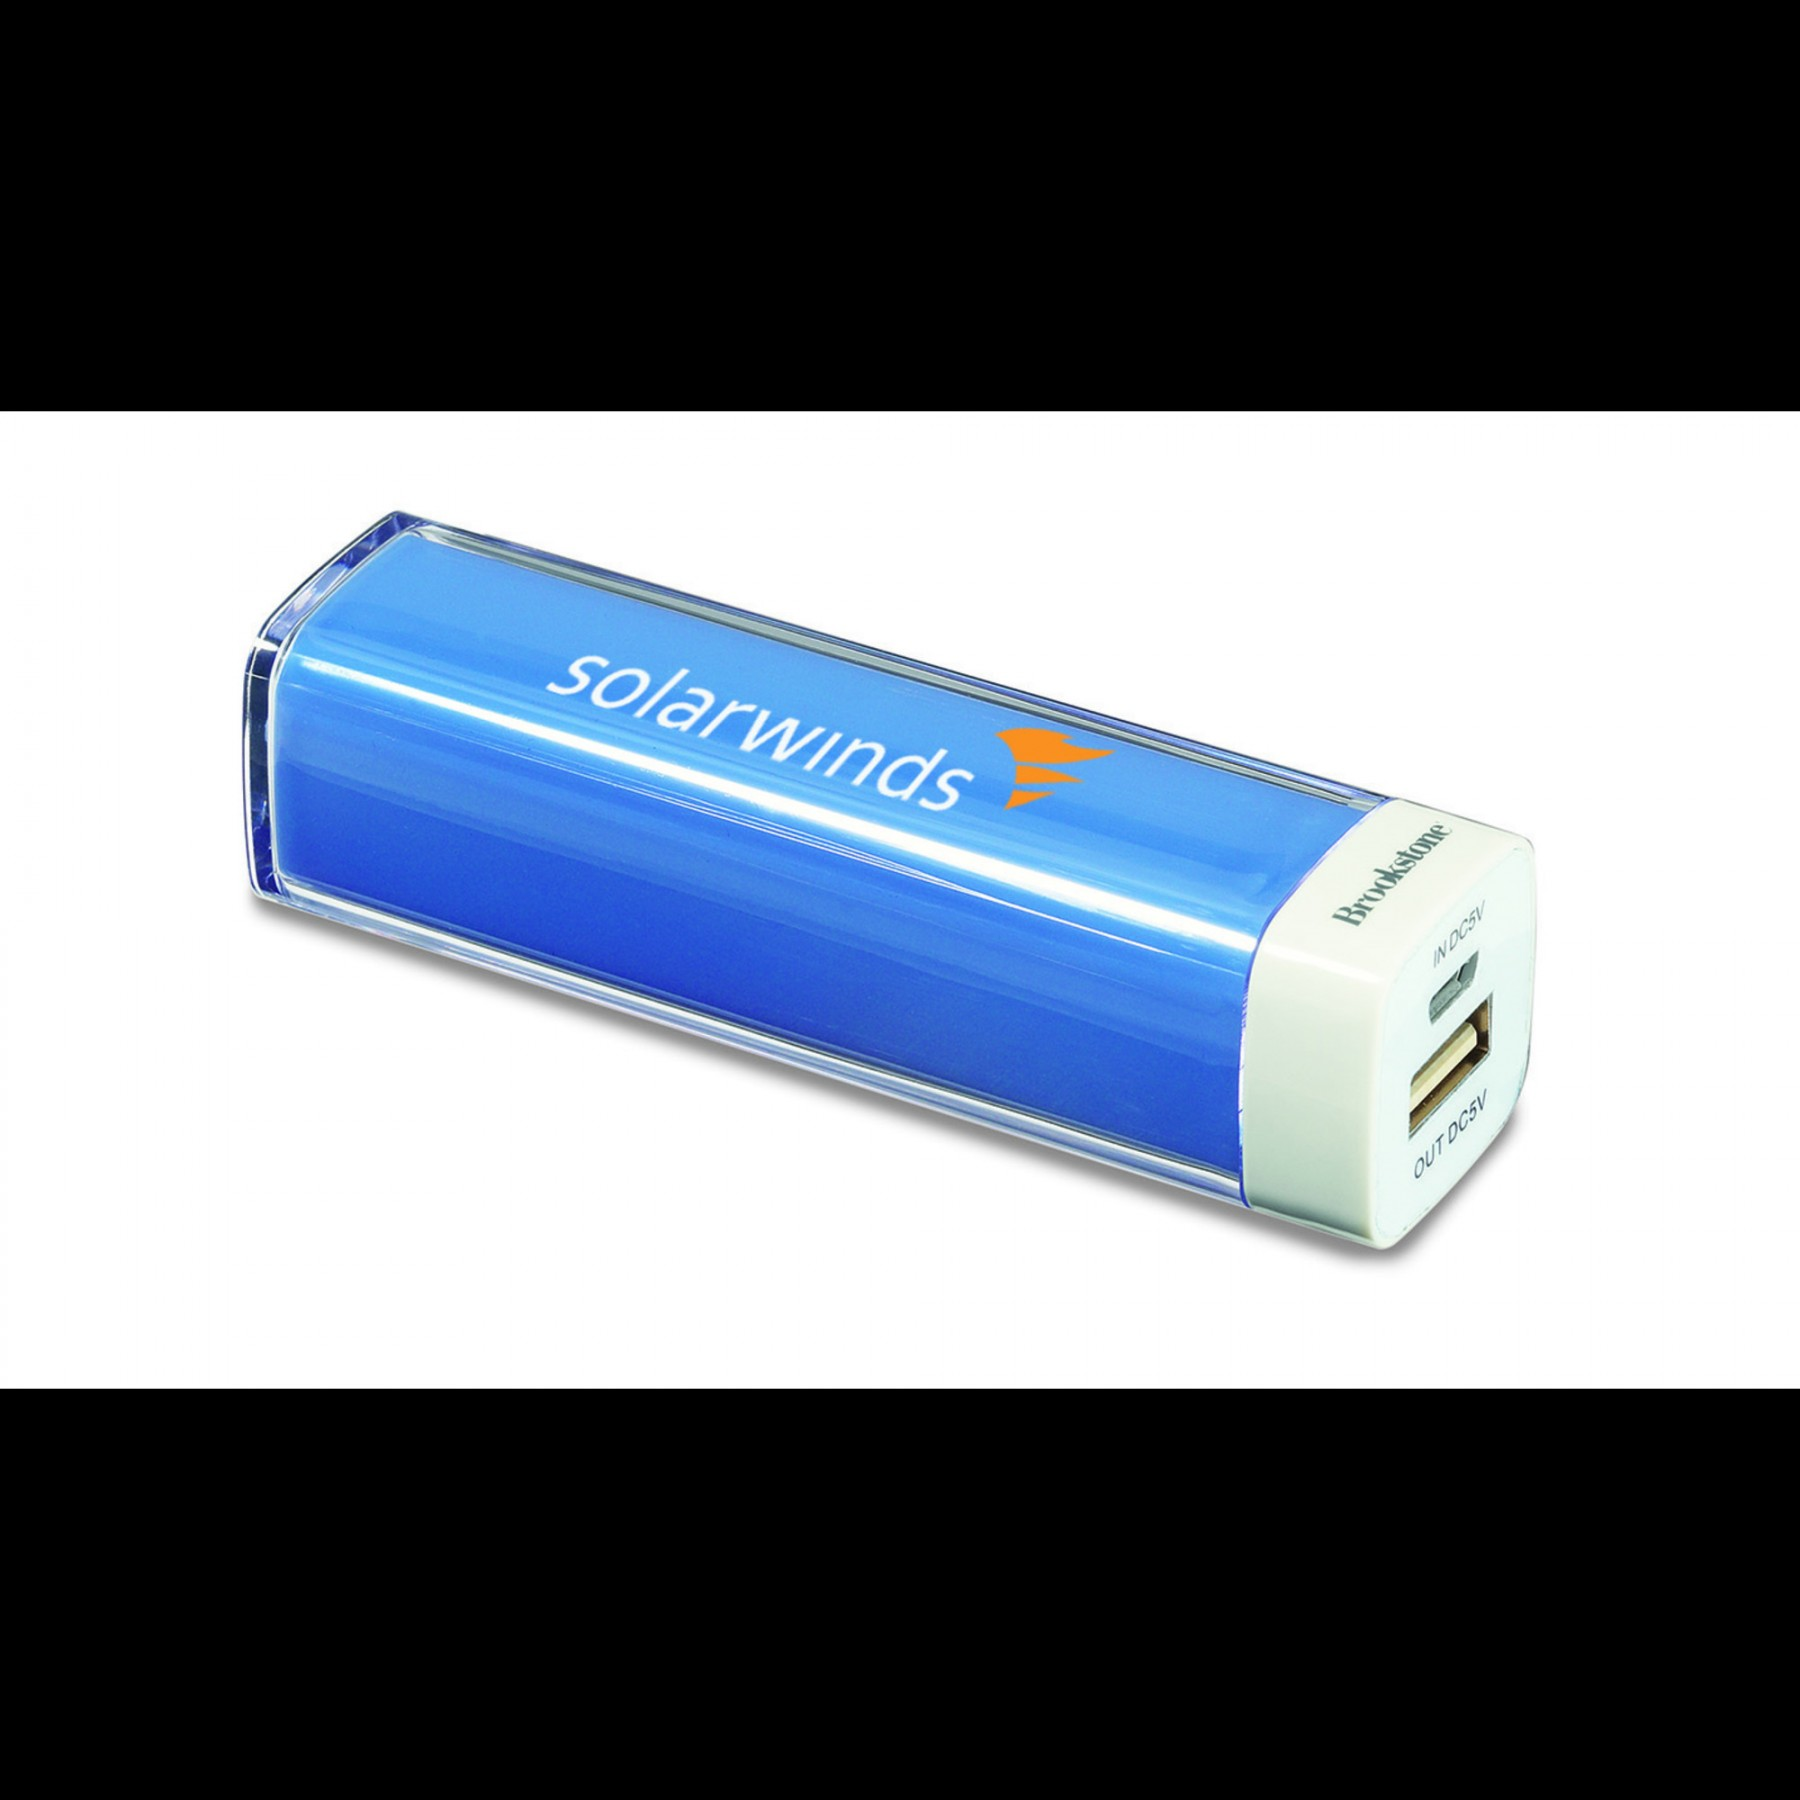 Brookstone Surge Power Bank - 2200mAh